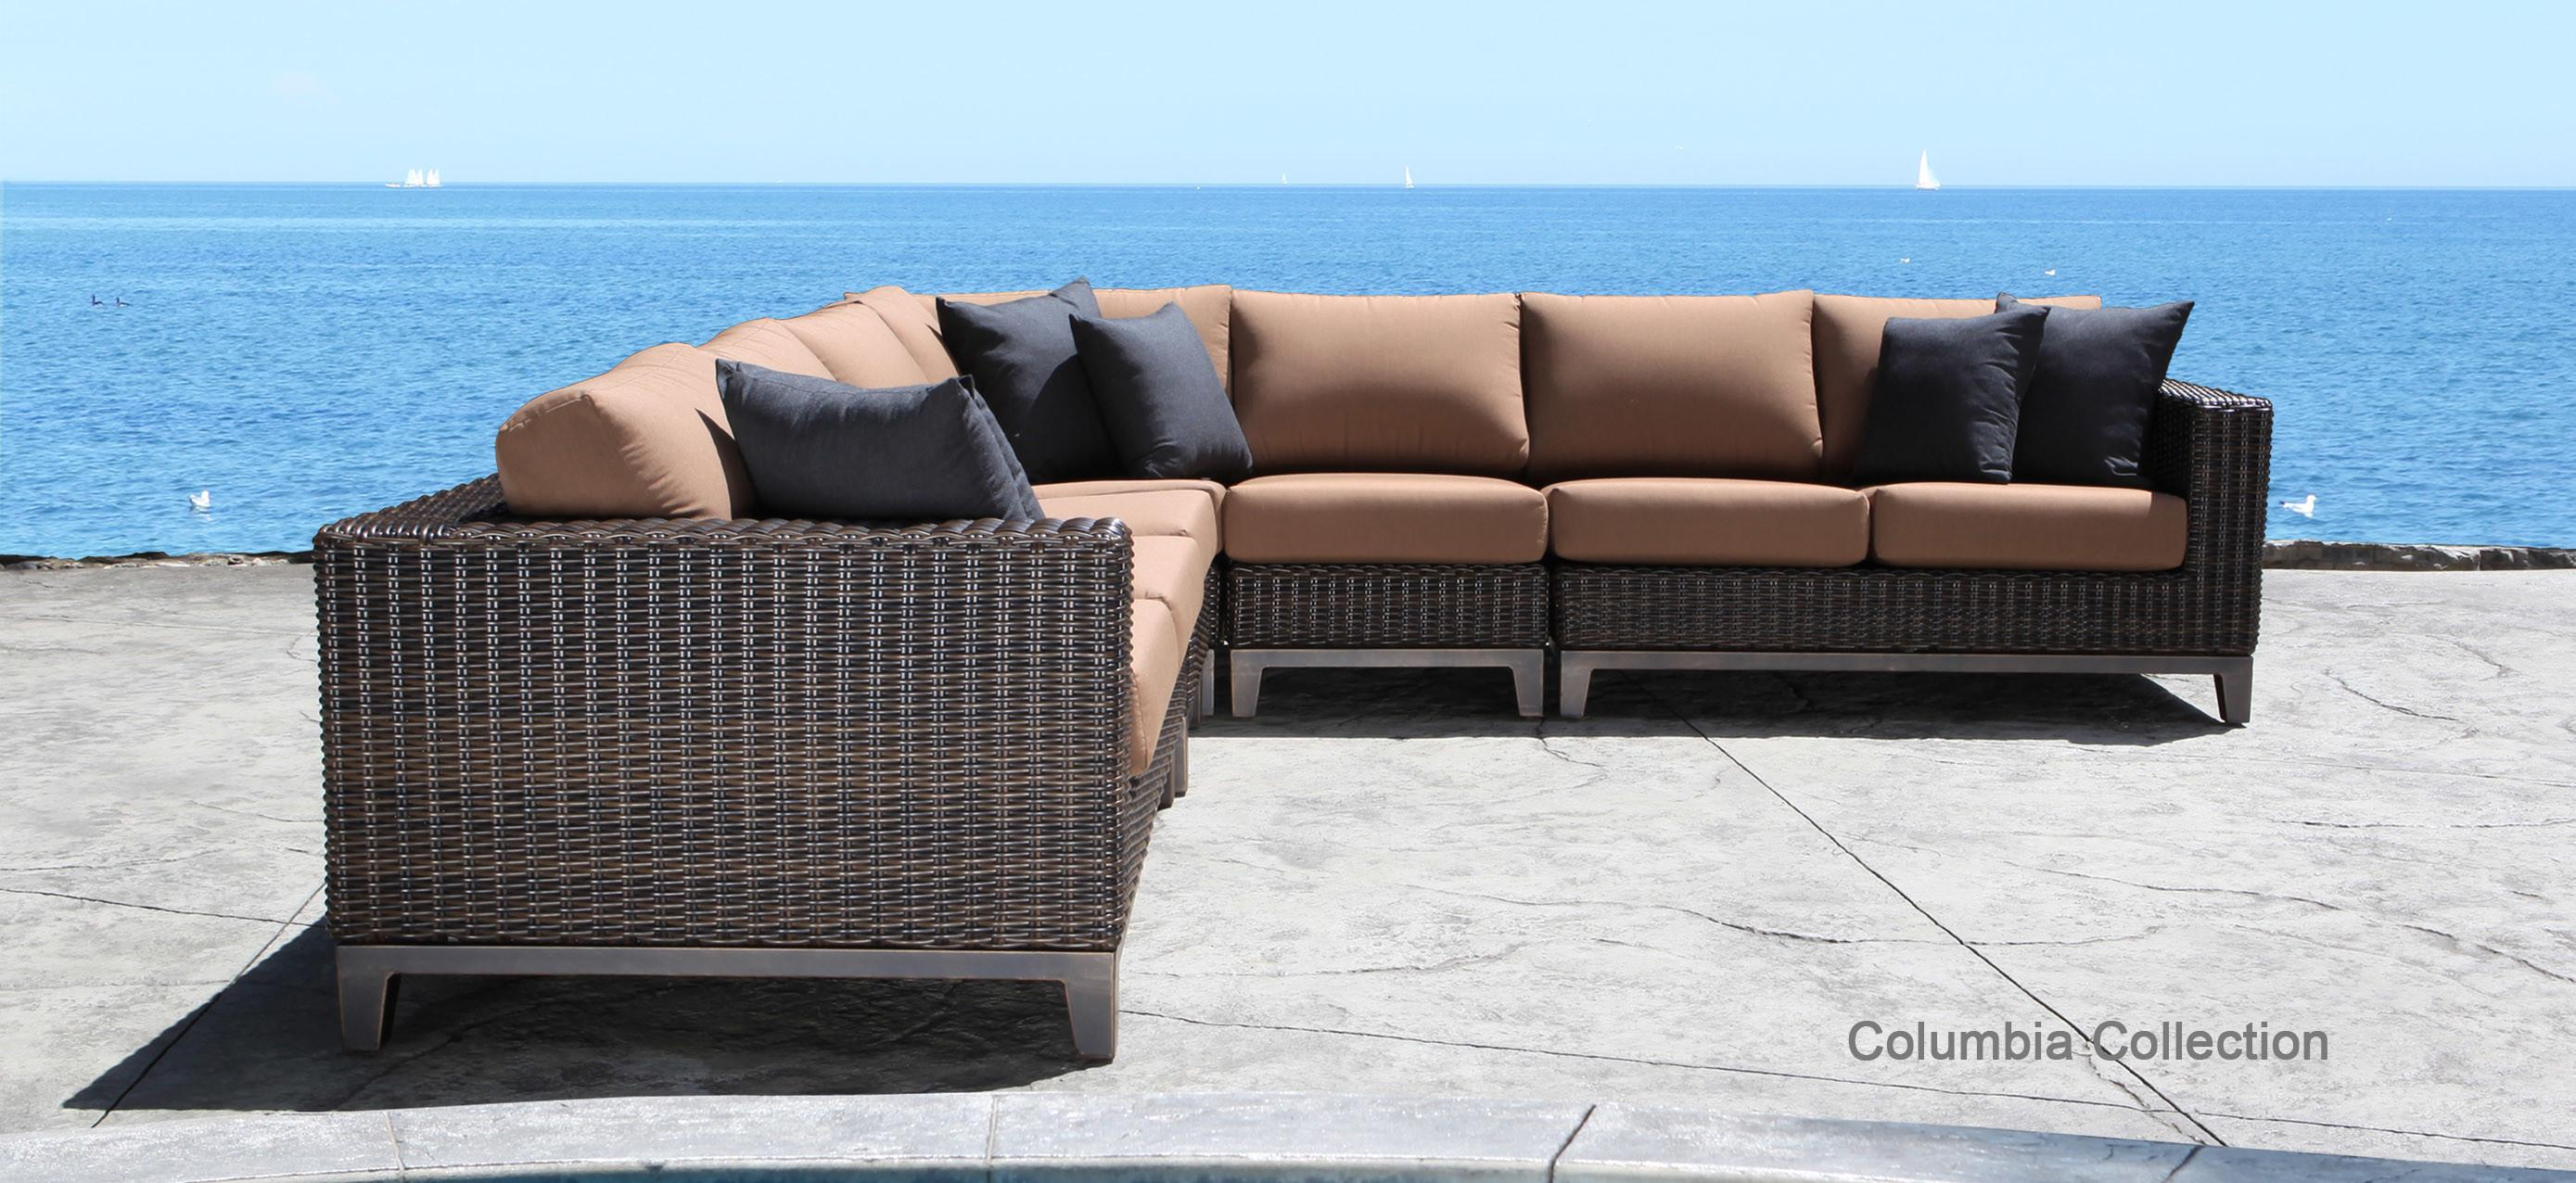 Designer Outdoor Furniture Interesting